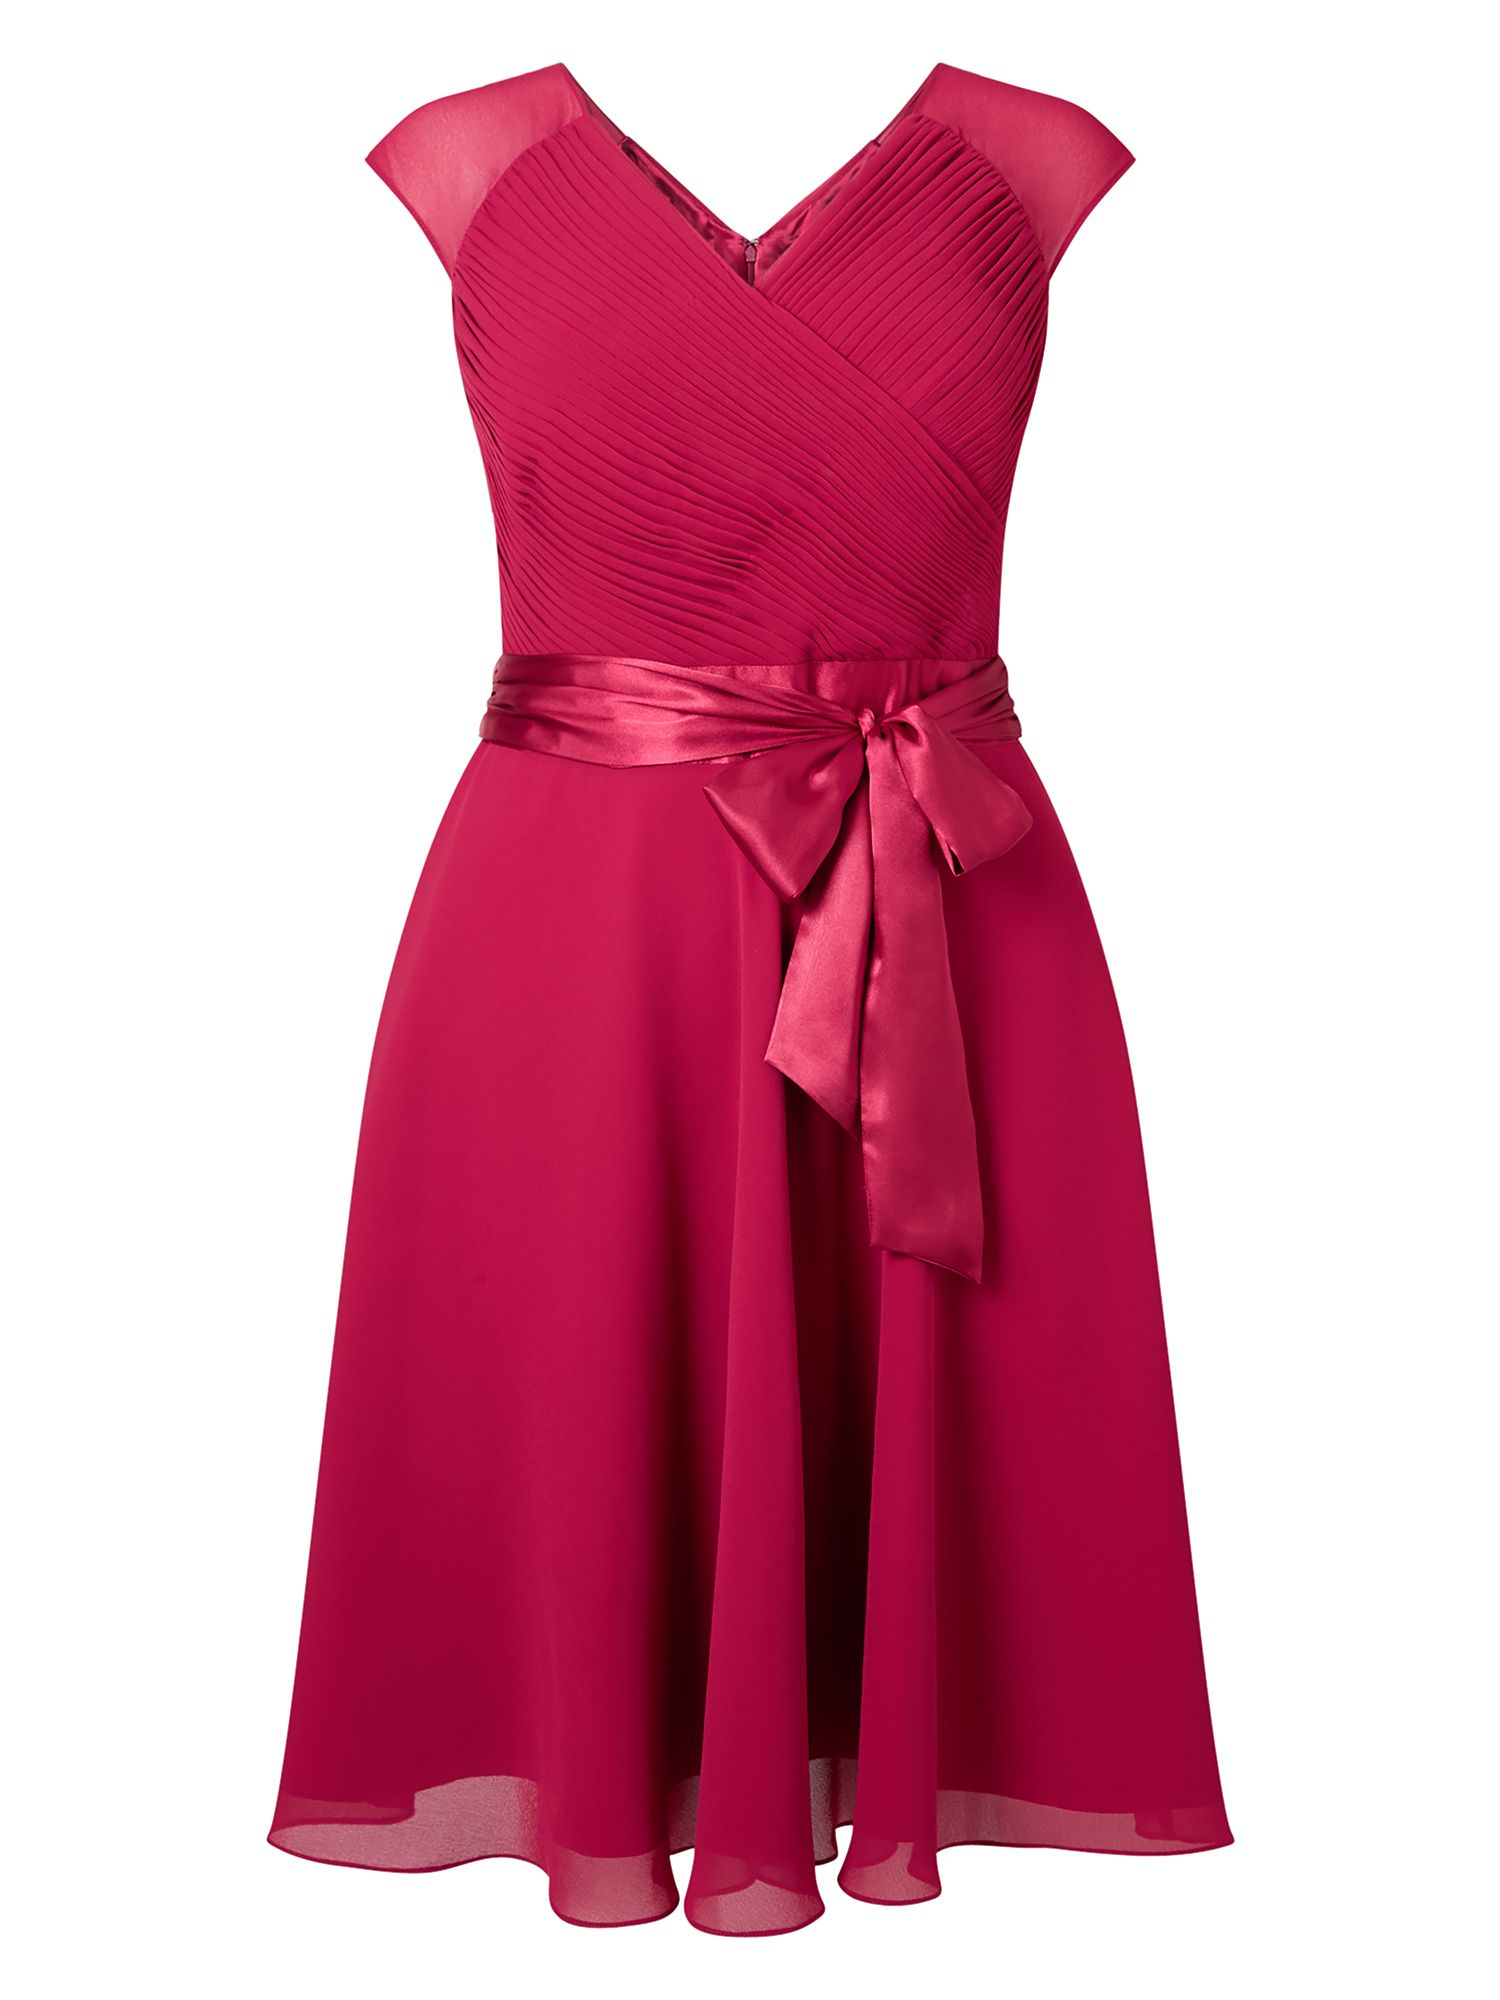 Studio 8 Anya Dress, Pink